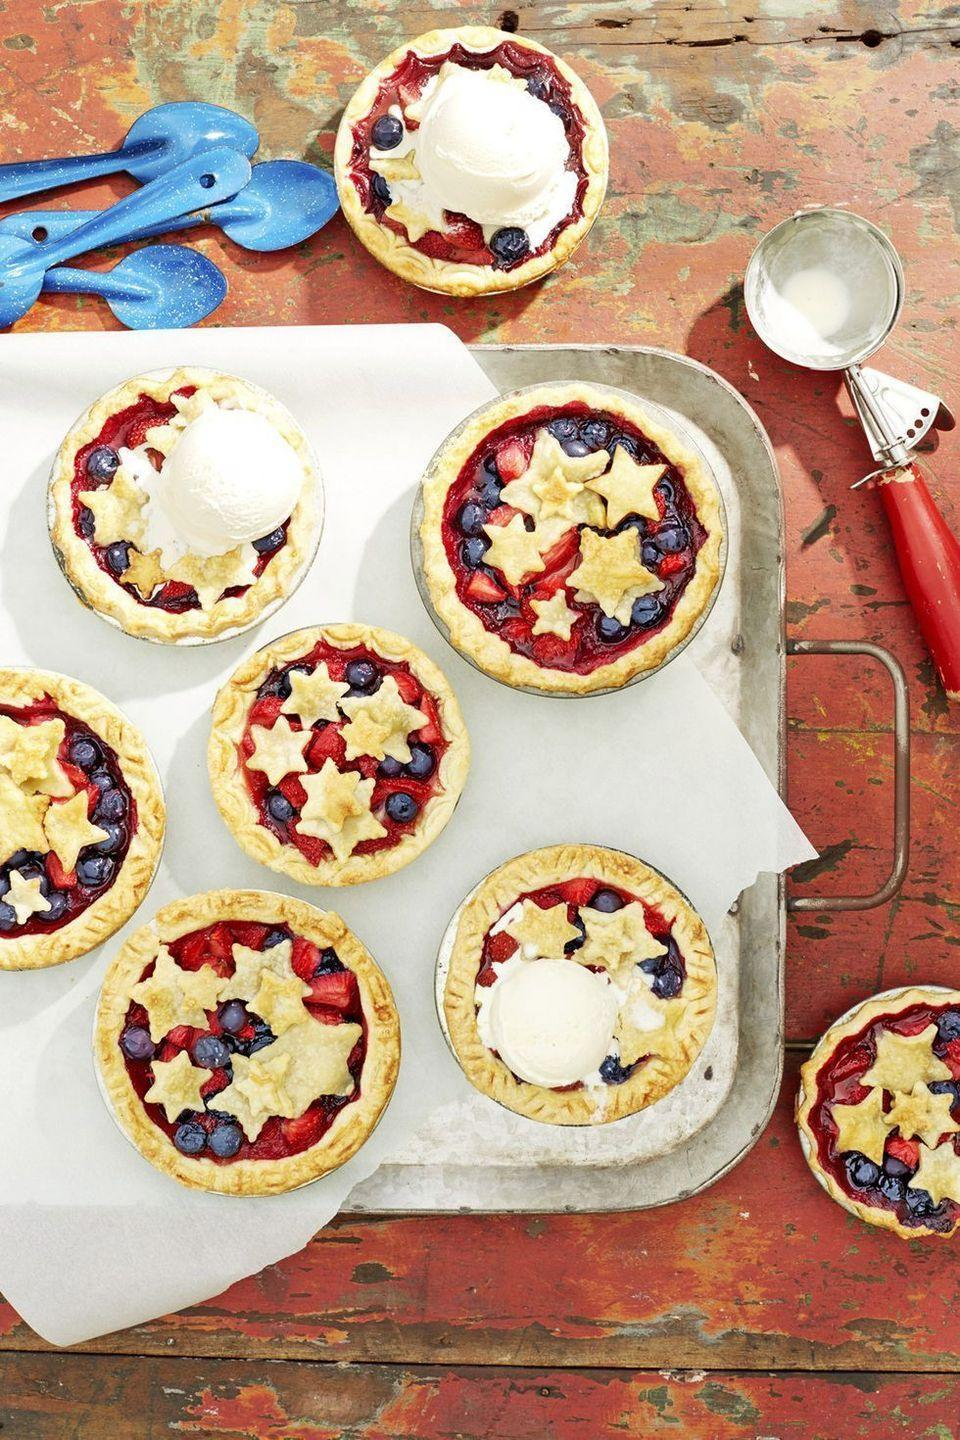 """<p>Cut out little dough stars to add a cute, festive touch to these traditional mini pies. Top with ice cream for added decadence.</p><p><strong><em>Get the recipe at <strong><a href=""""https://www.countryliving.com/food-drinks/a21348015/mini-stars-berry-pies-recipe/"""" rel=""""nofollow noopener"""" target=""""_blank"""" data-ylk=""""slk:Country Living."""" class=""""link rapid-noclick-resp"""">Country Living.</a></strong></em></strong></p>"""